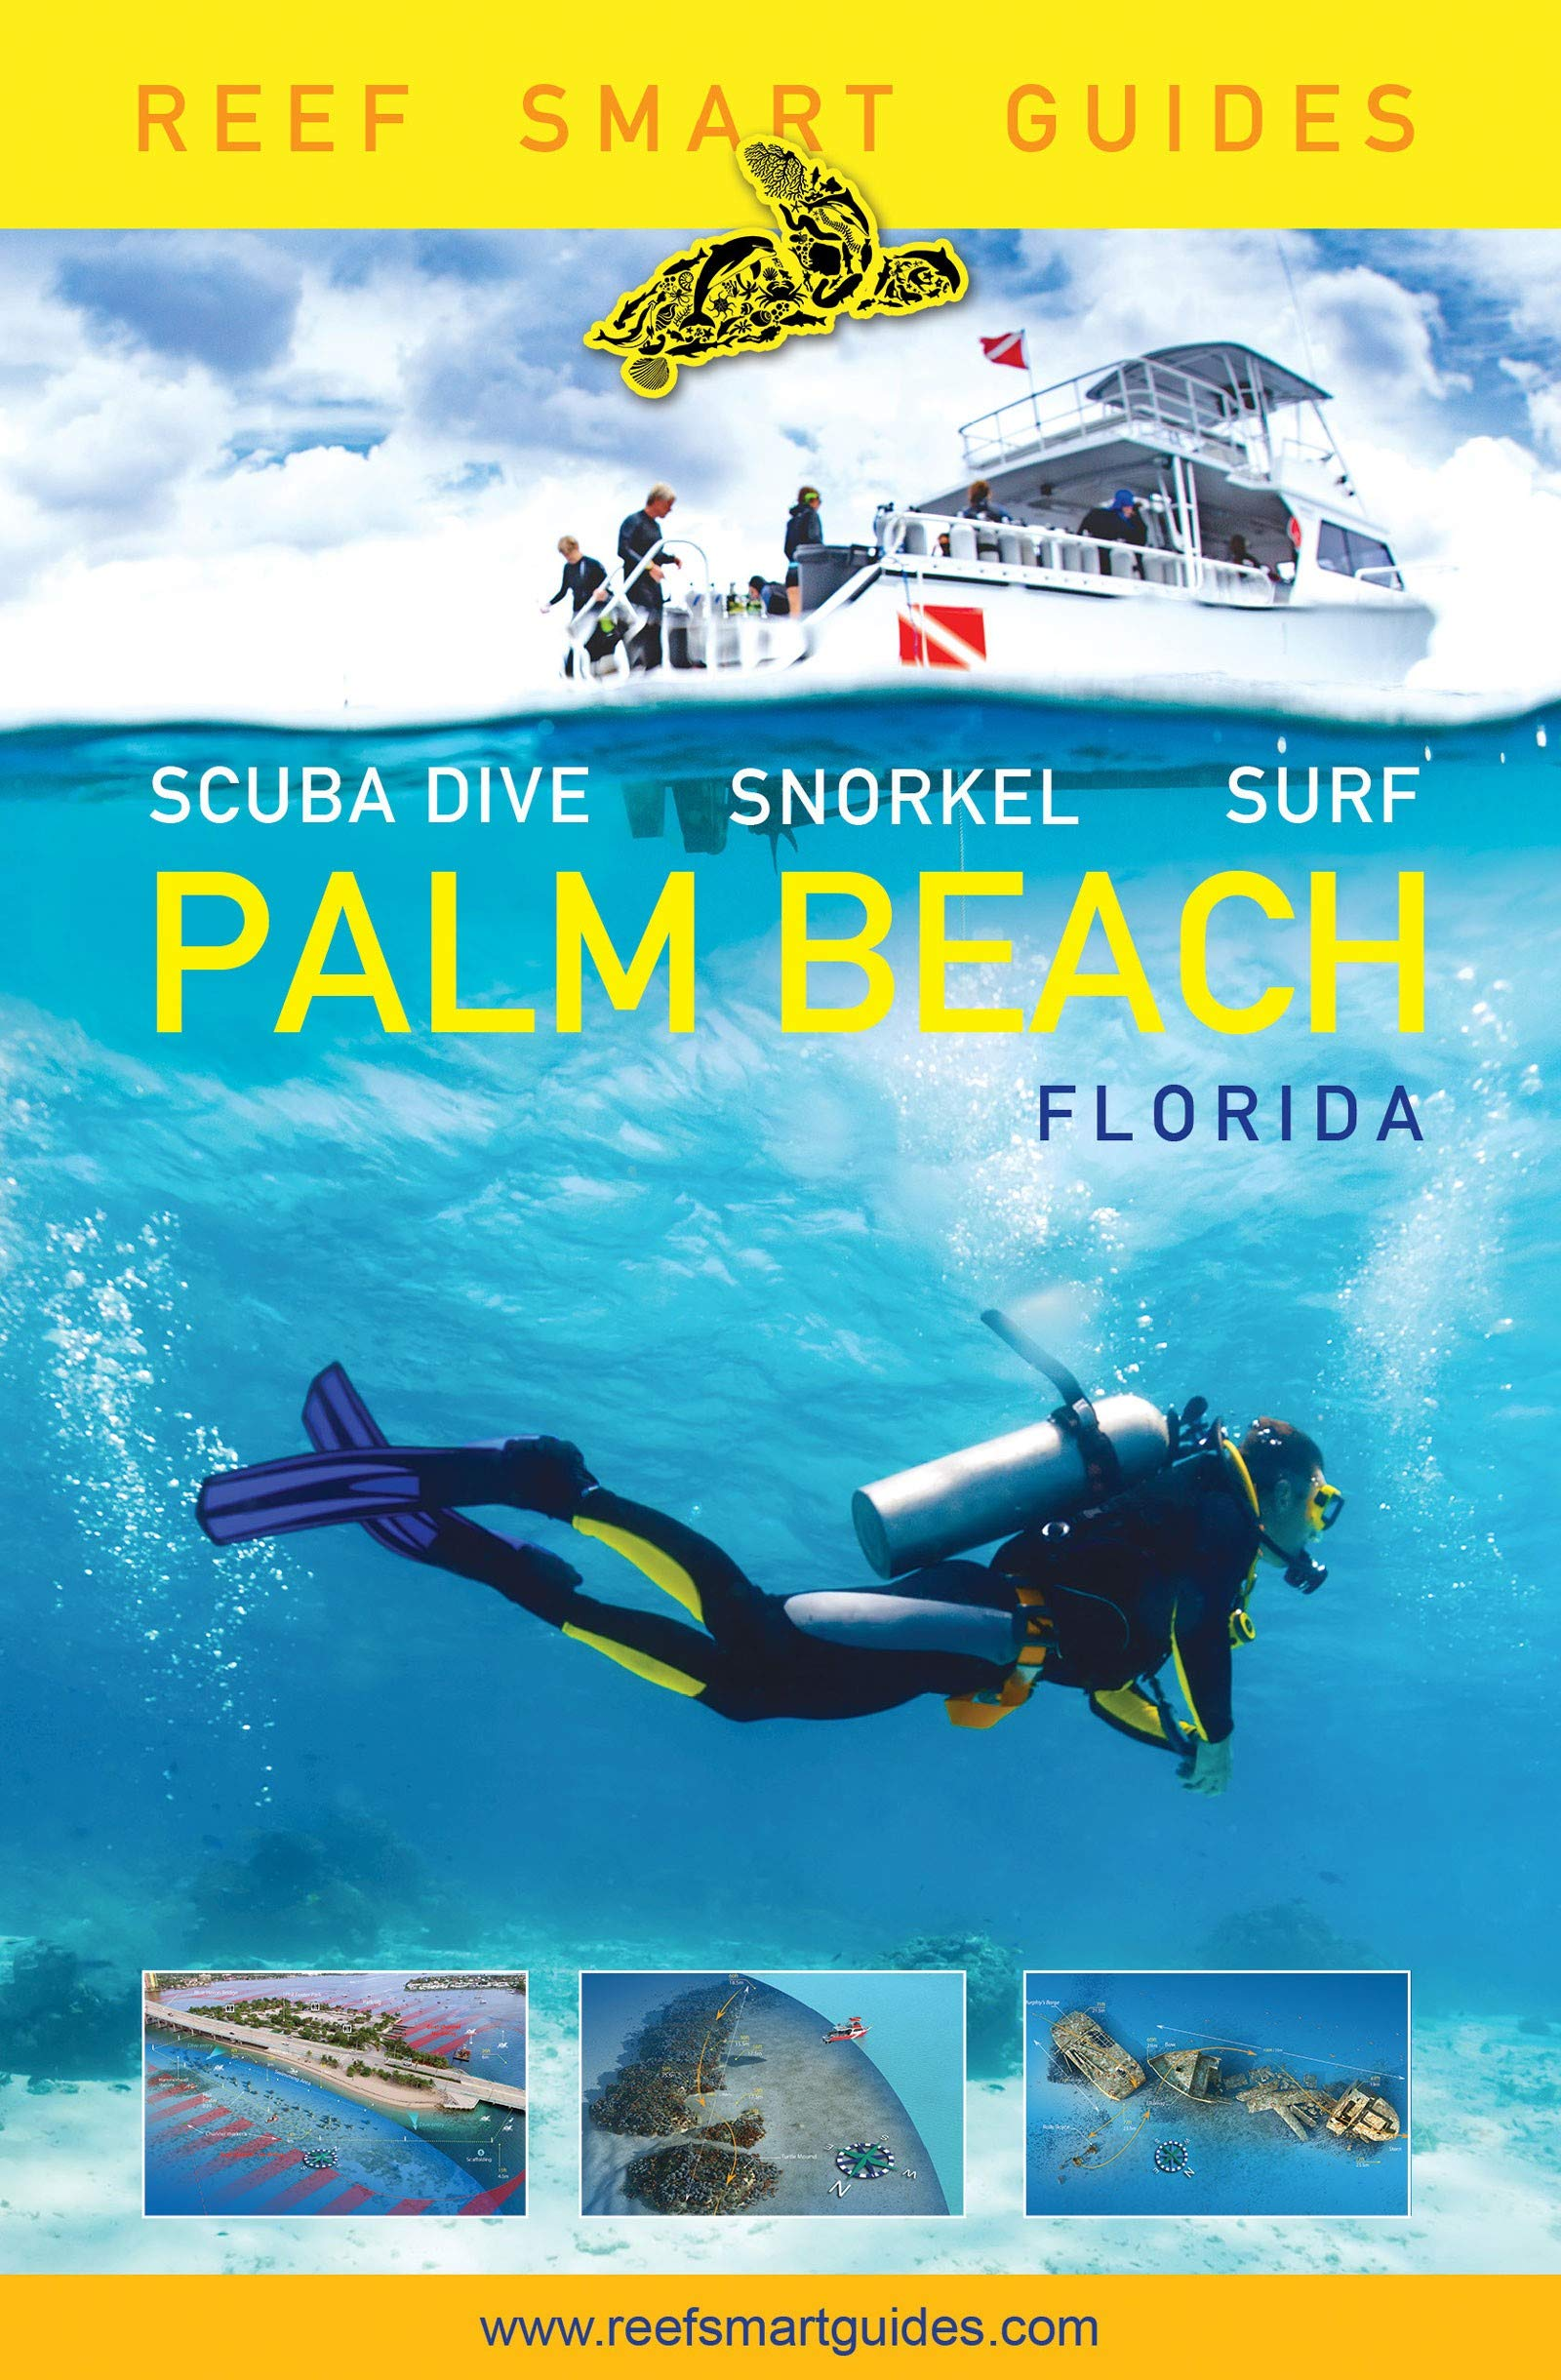 Reef Smart Guides Florida: Palm Beach: Scuba Dive. Snorkel. Surf. by Reef Smart Guides